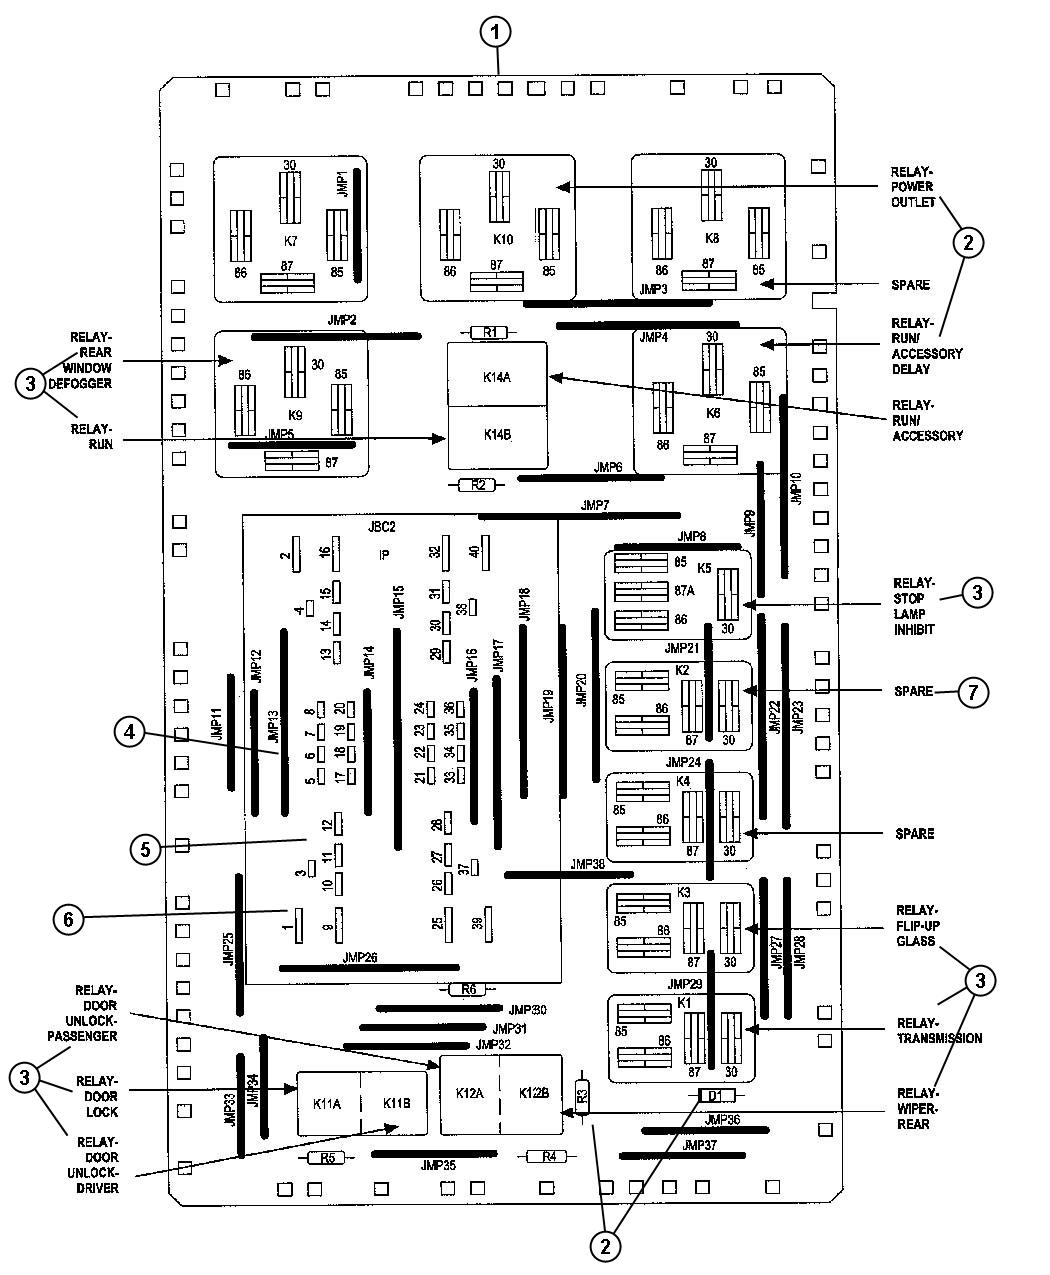 hight resolution of electrical wiring diagram 2006 jeep commander electrical 2006 jeep commander stereo wiring diagram 2006 jeep commander